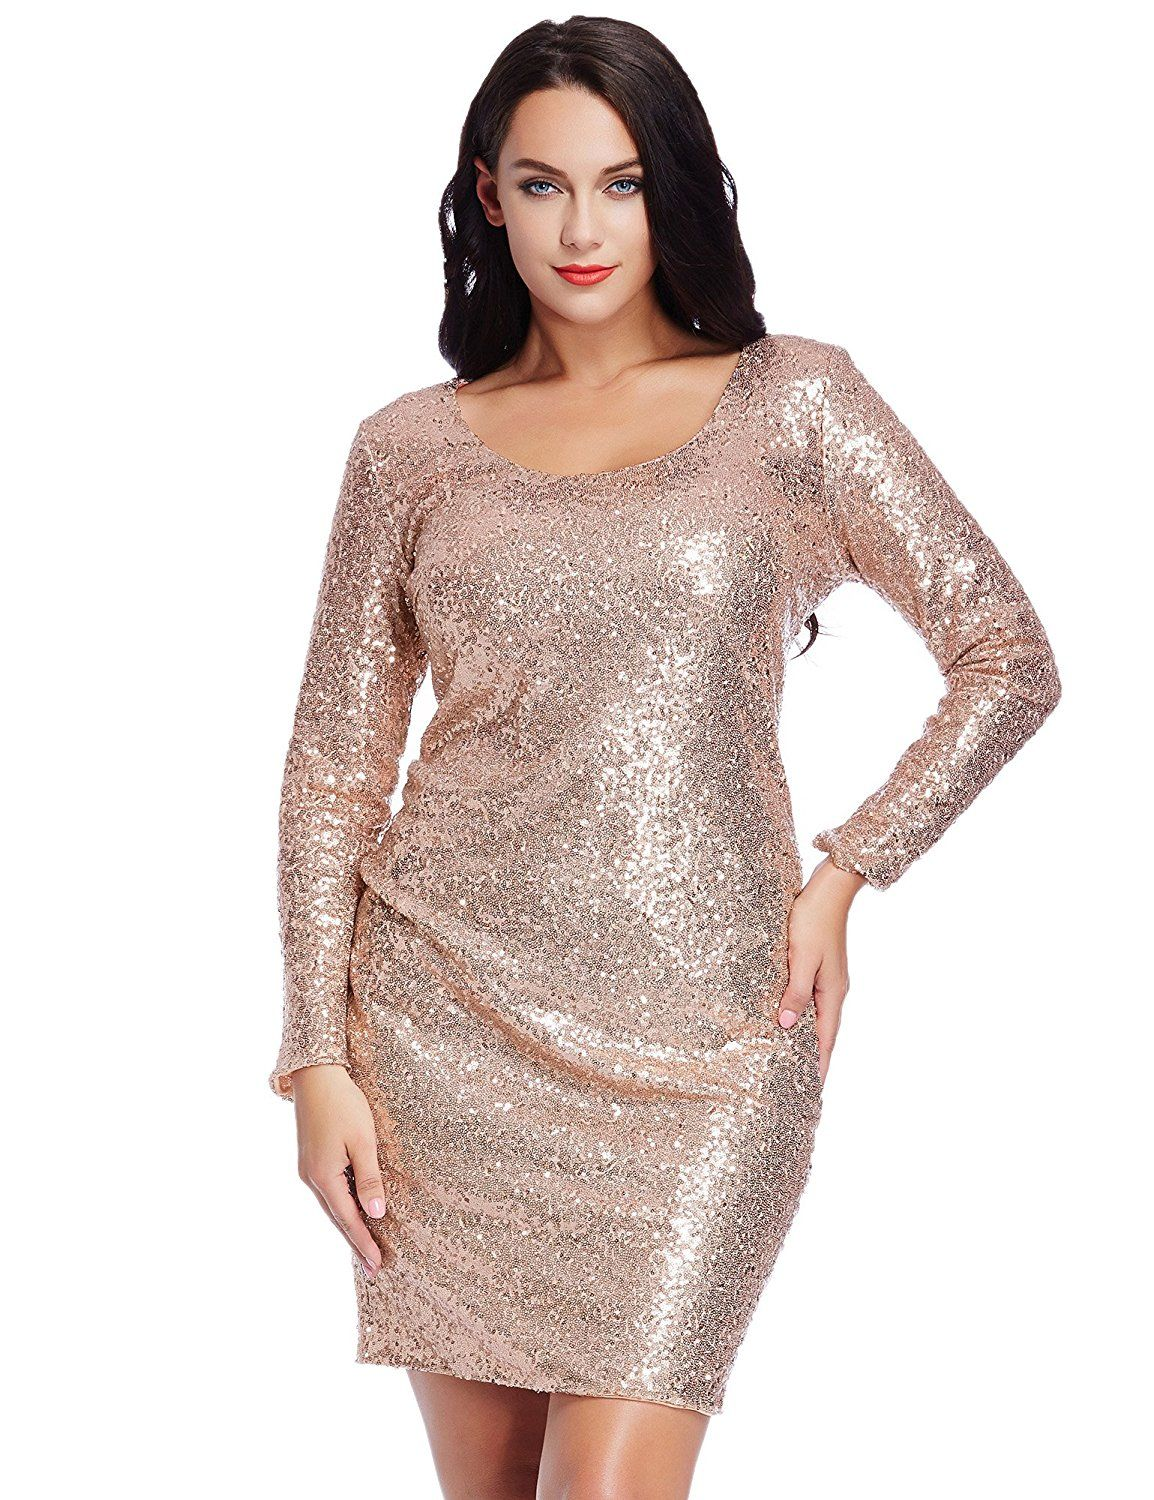 784f6b49 Grapent Women's Plus Size Sequin Cocktail Sheath Short Dress Bodycon Long  Sleeve at Amazon Women's Clothing store: